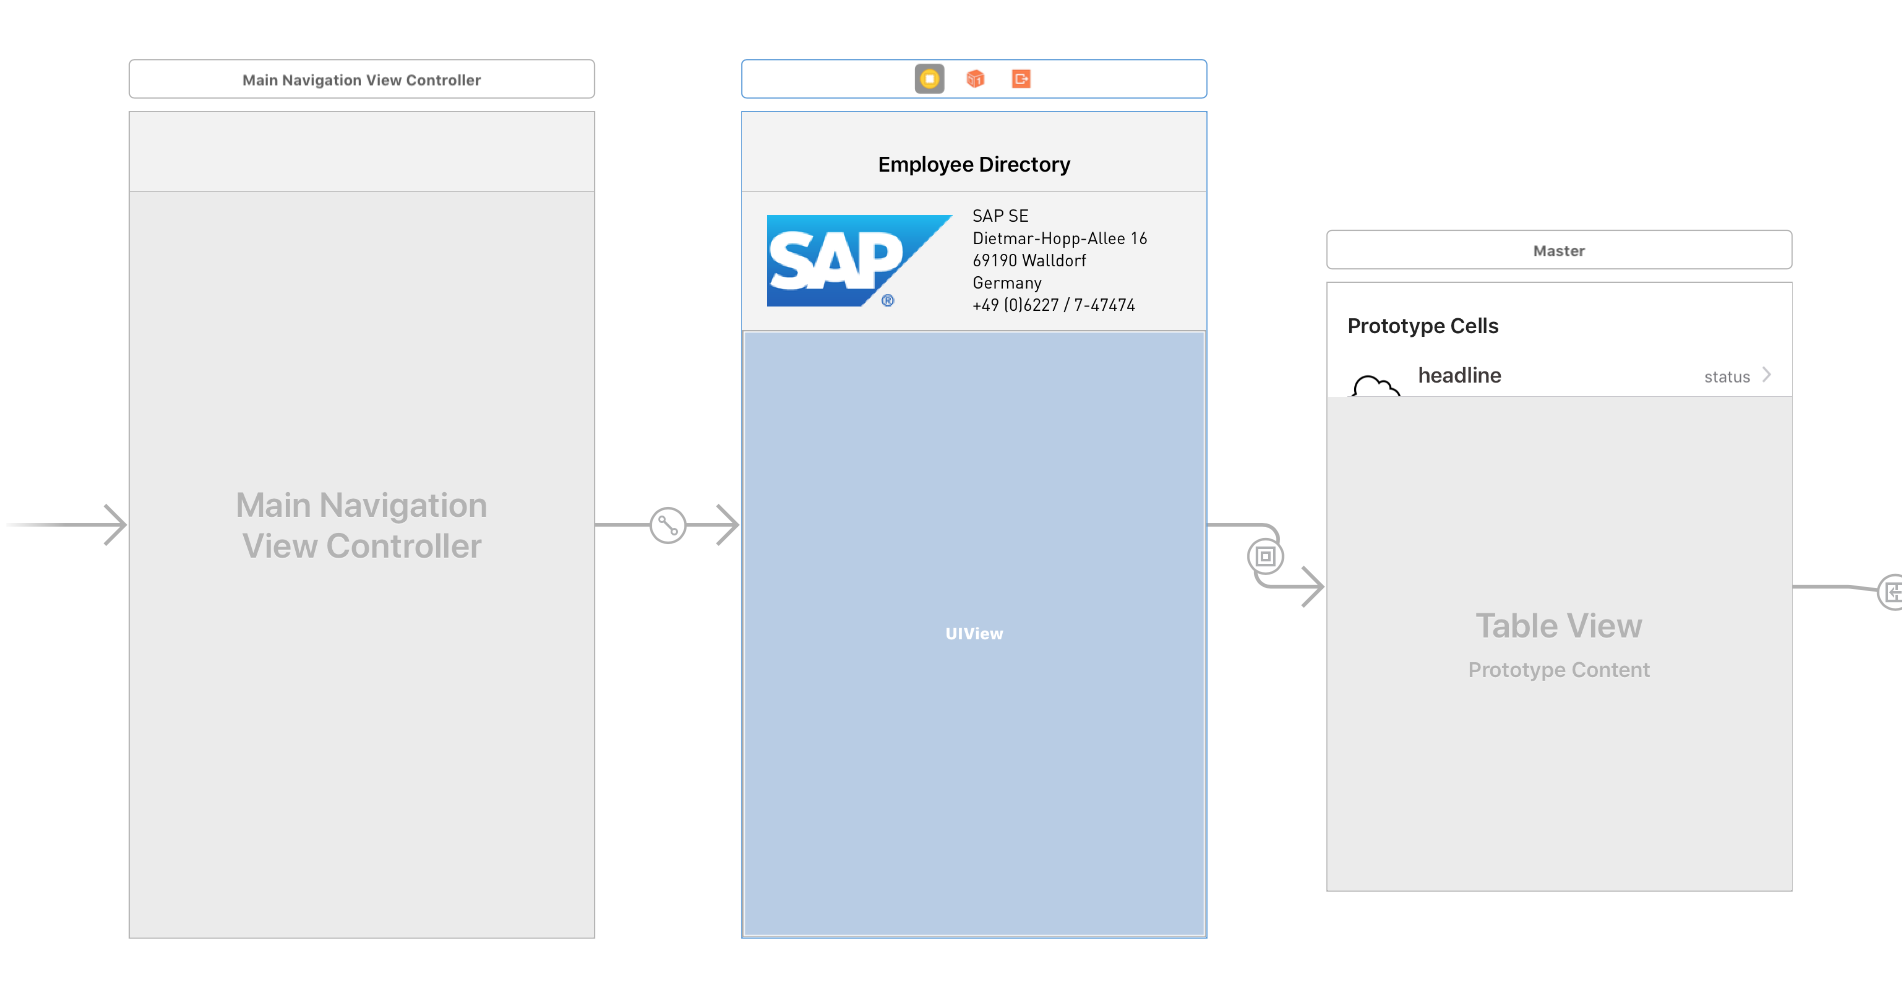 Creating a Corporate Directory App with SAP's Cloud Platform SDK for iOS - Part 3